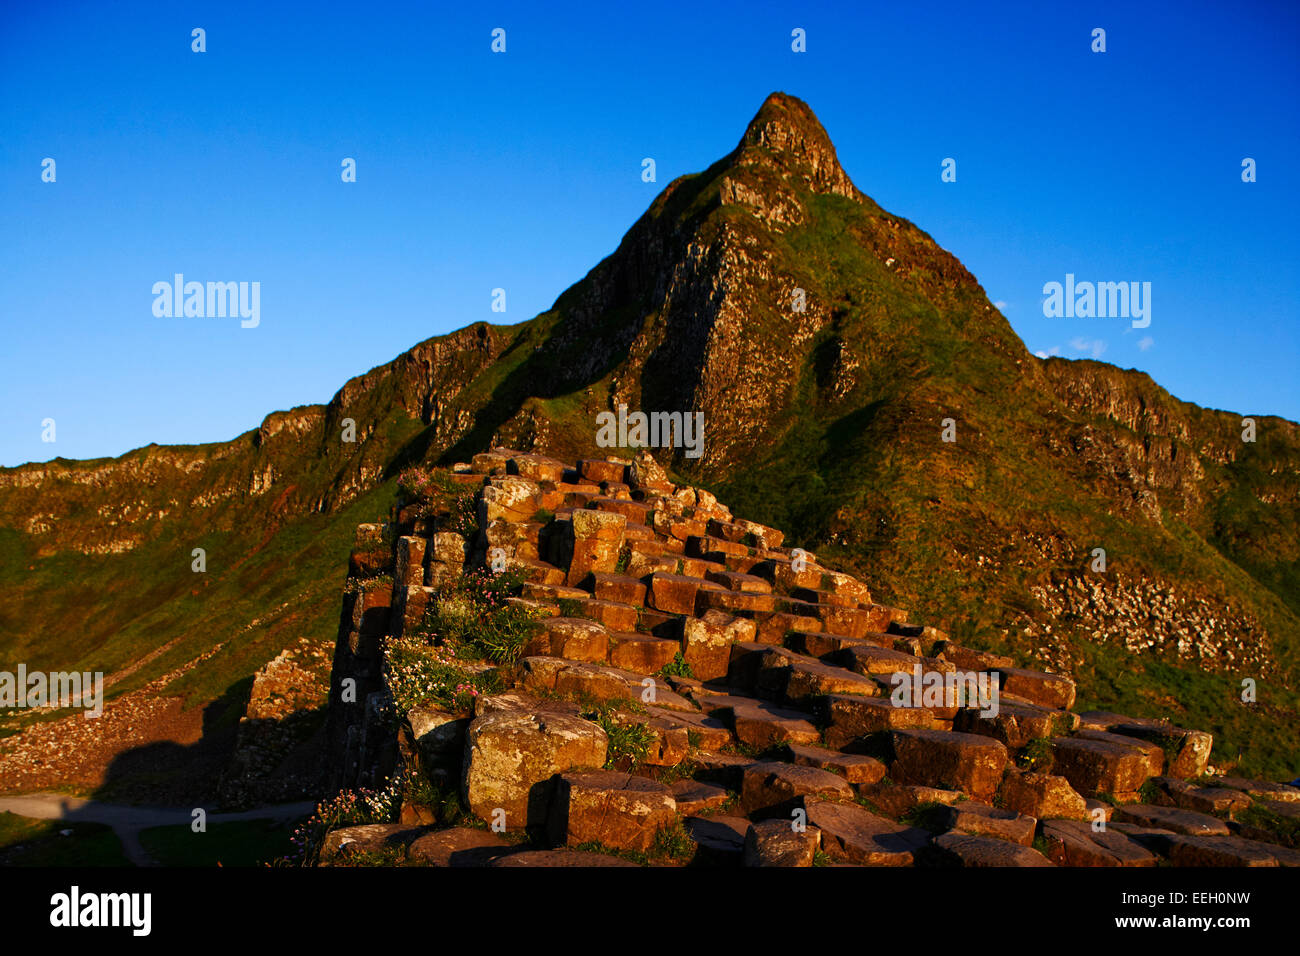 Giants Causeway north antrim coast northern ireland - Stock Image